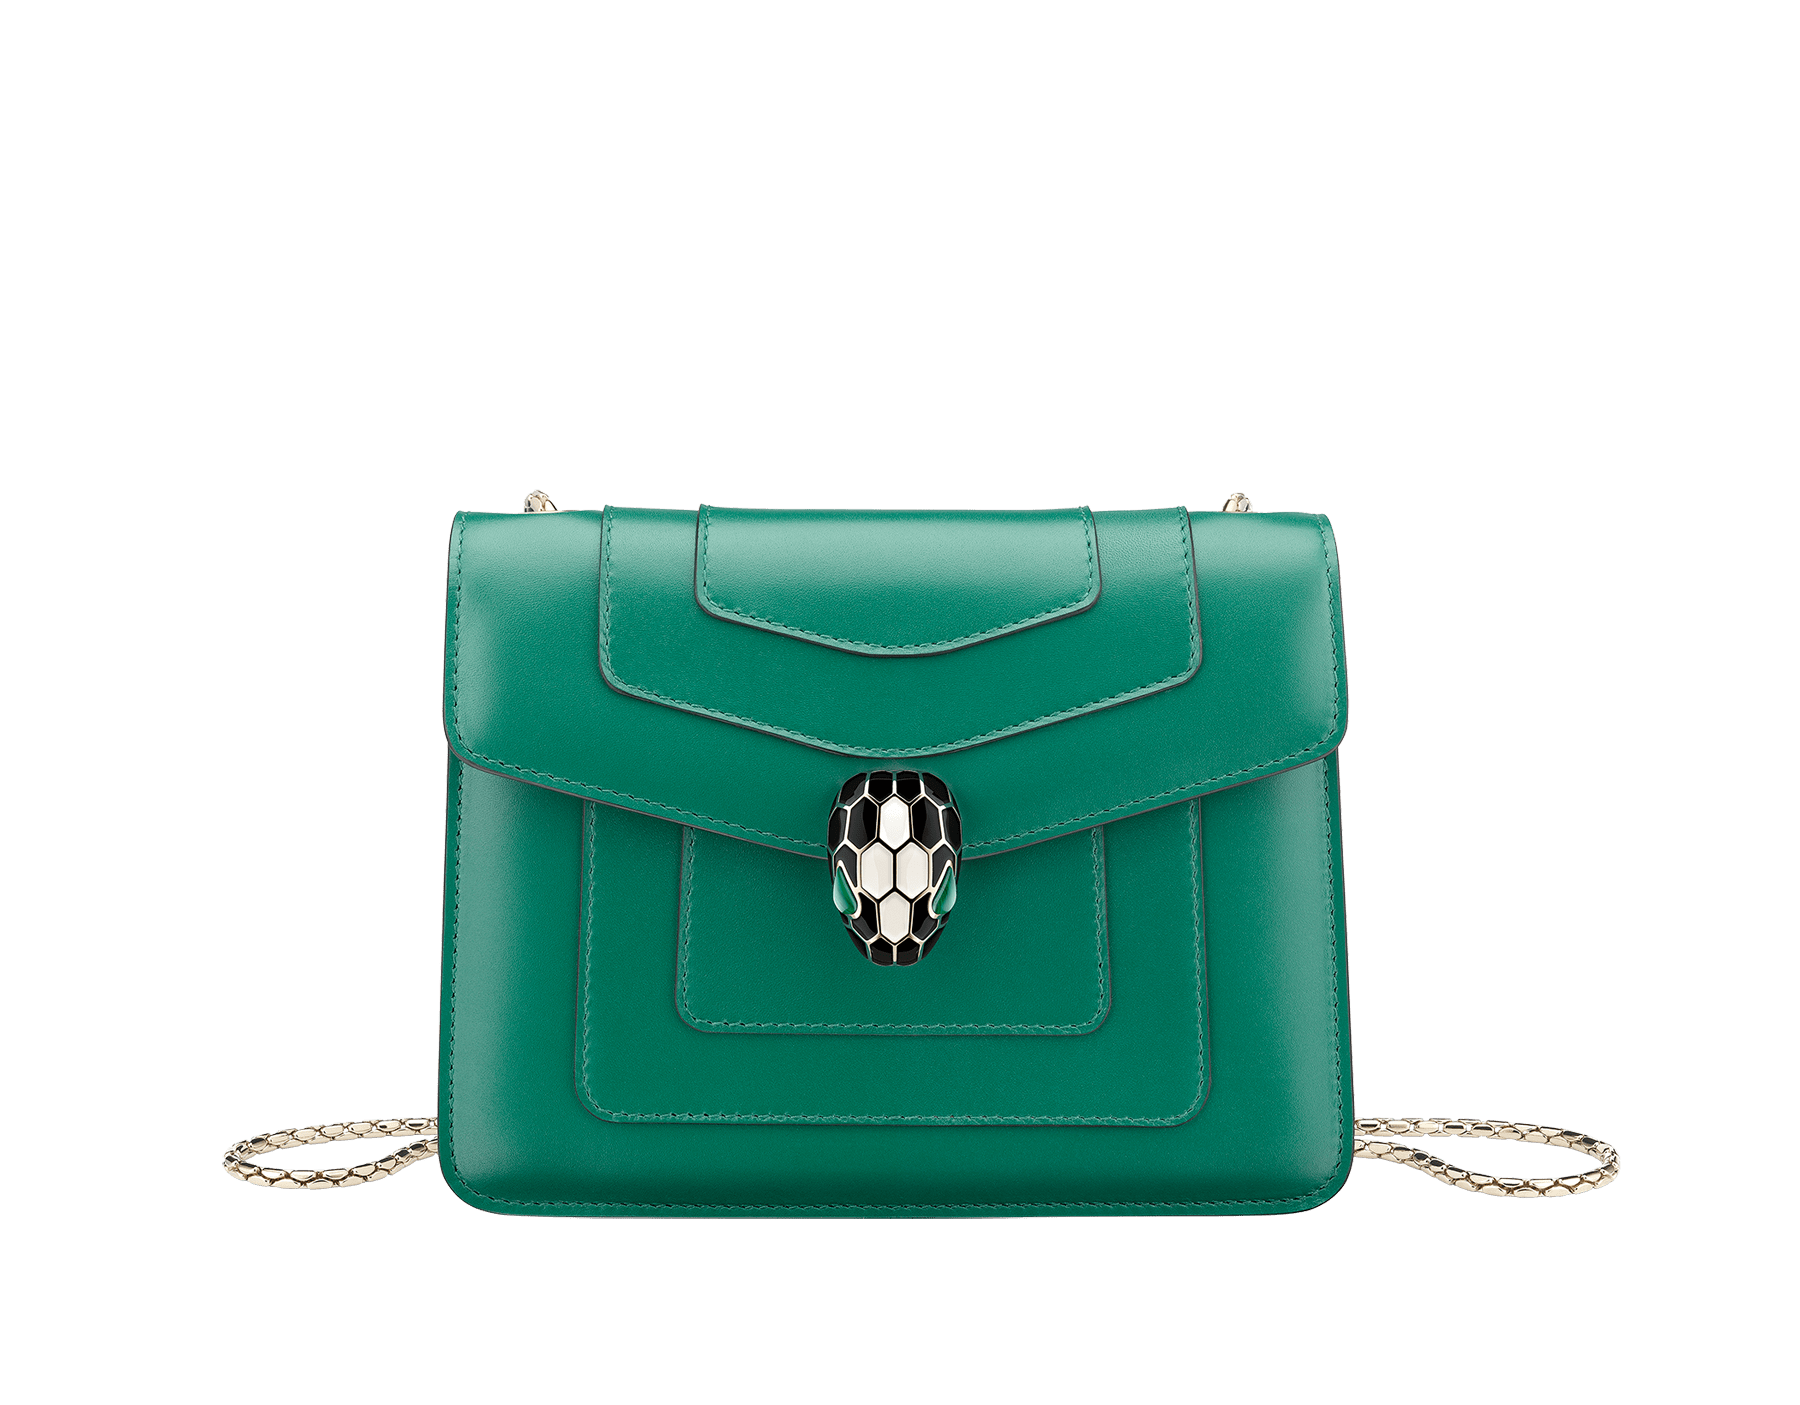 """Serpenti Forever"" crossbody bag in emerald-green calfskin with amethyst-purple grosgrain inner lining. Iconic snakehead closure in light gold-plated brass embellished with black and agate-white enamel and green malachite eyes. 422-CLa image 1"